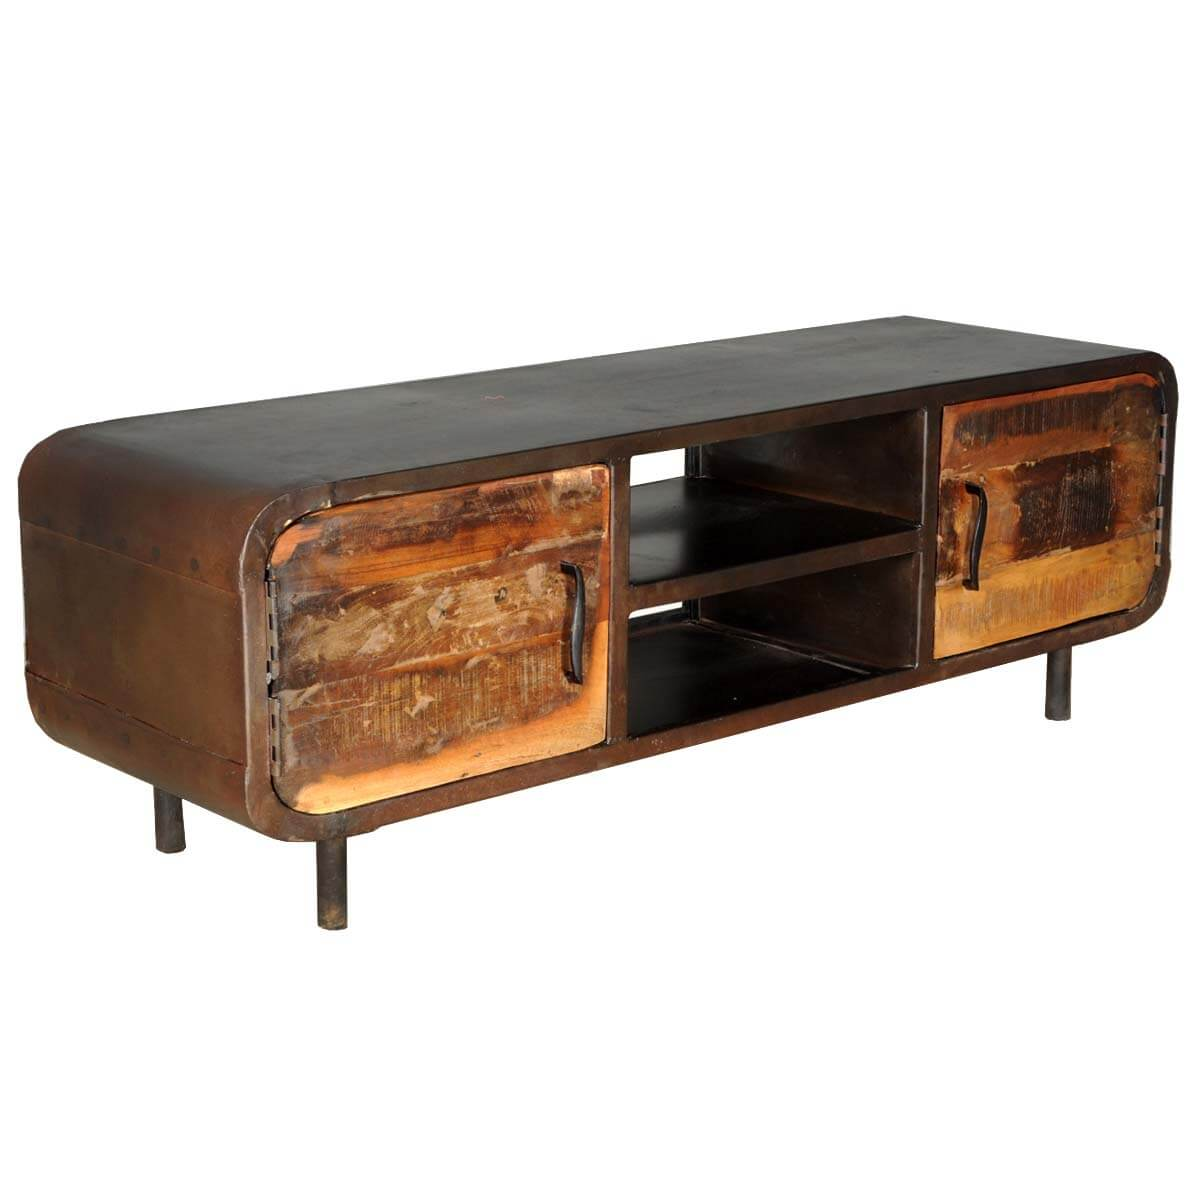 1950's Retro Reclaimed Wood & Iron Media Cabinet & TV Stand